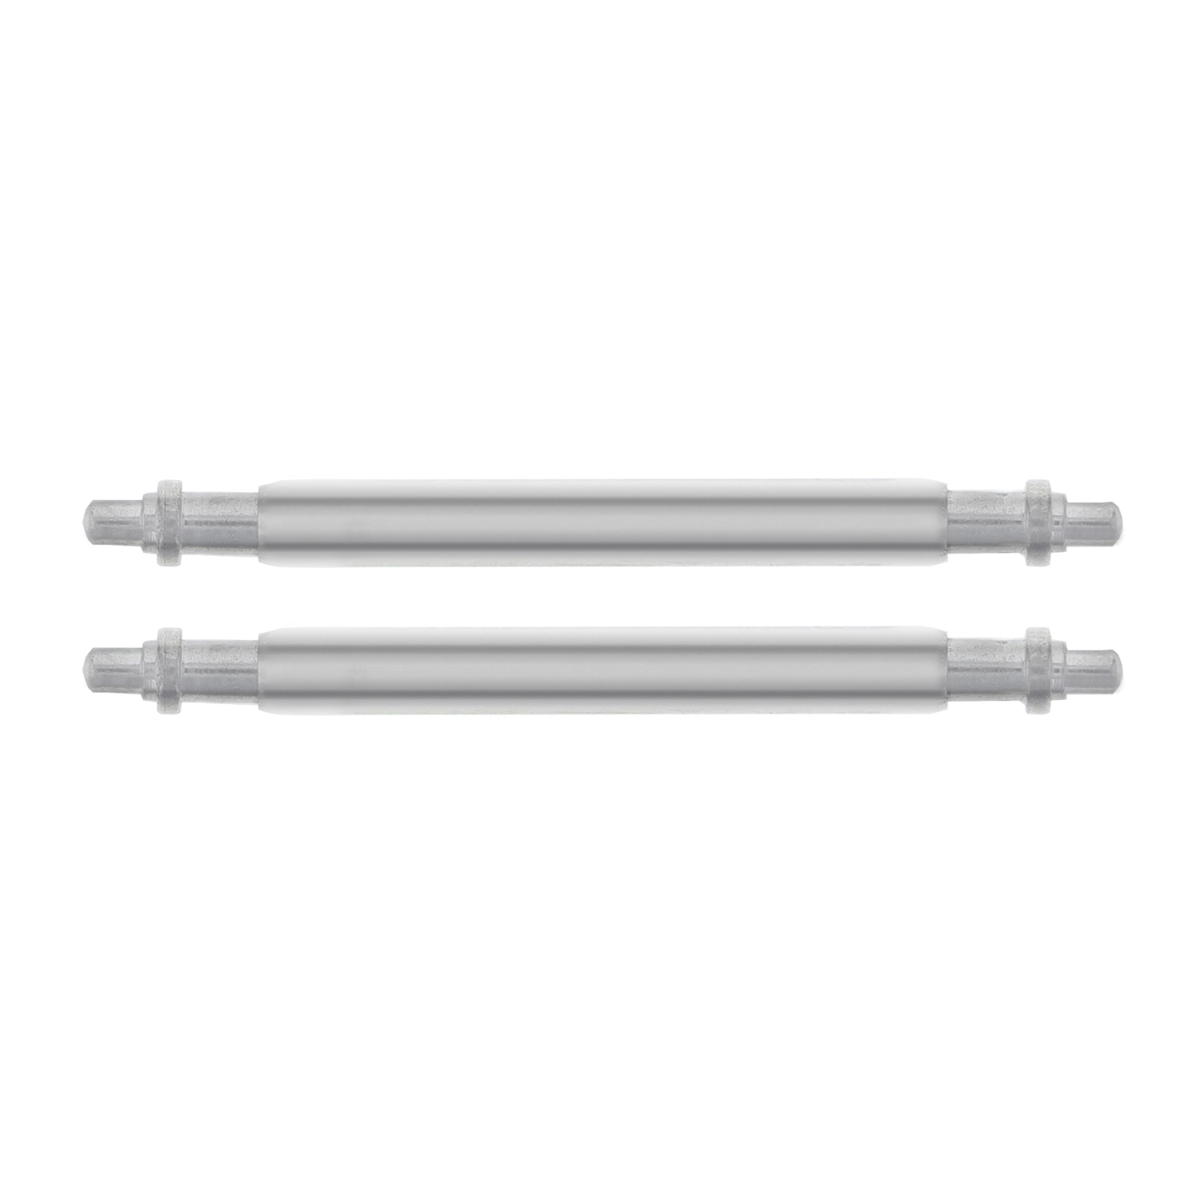 2 SPRING BAR PIN FOR ROLEX CELLINI WATCH 20MM STAINLESS STEEL